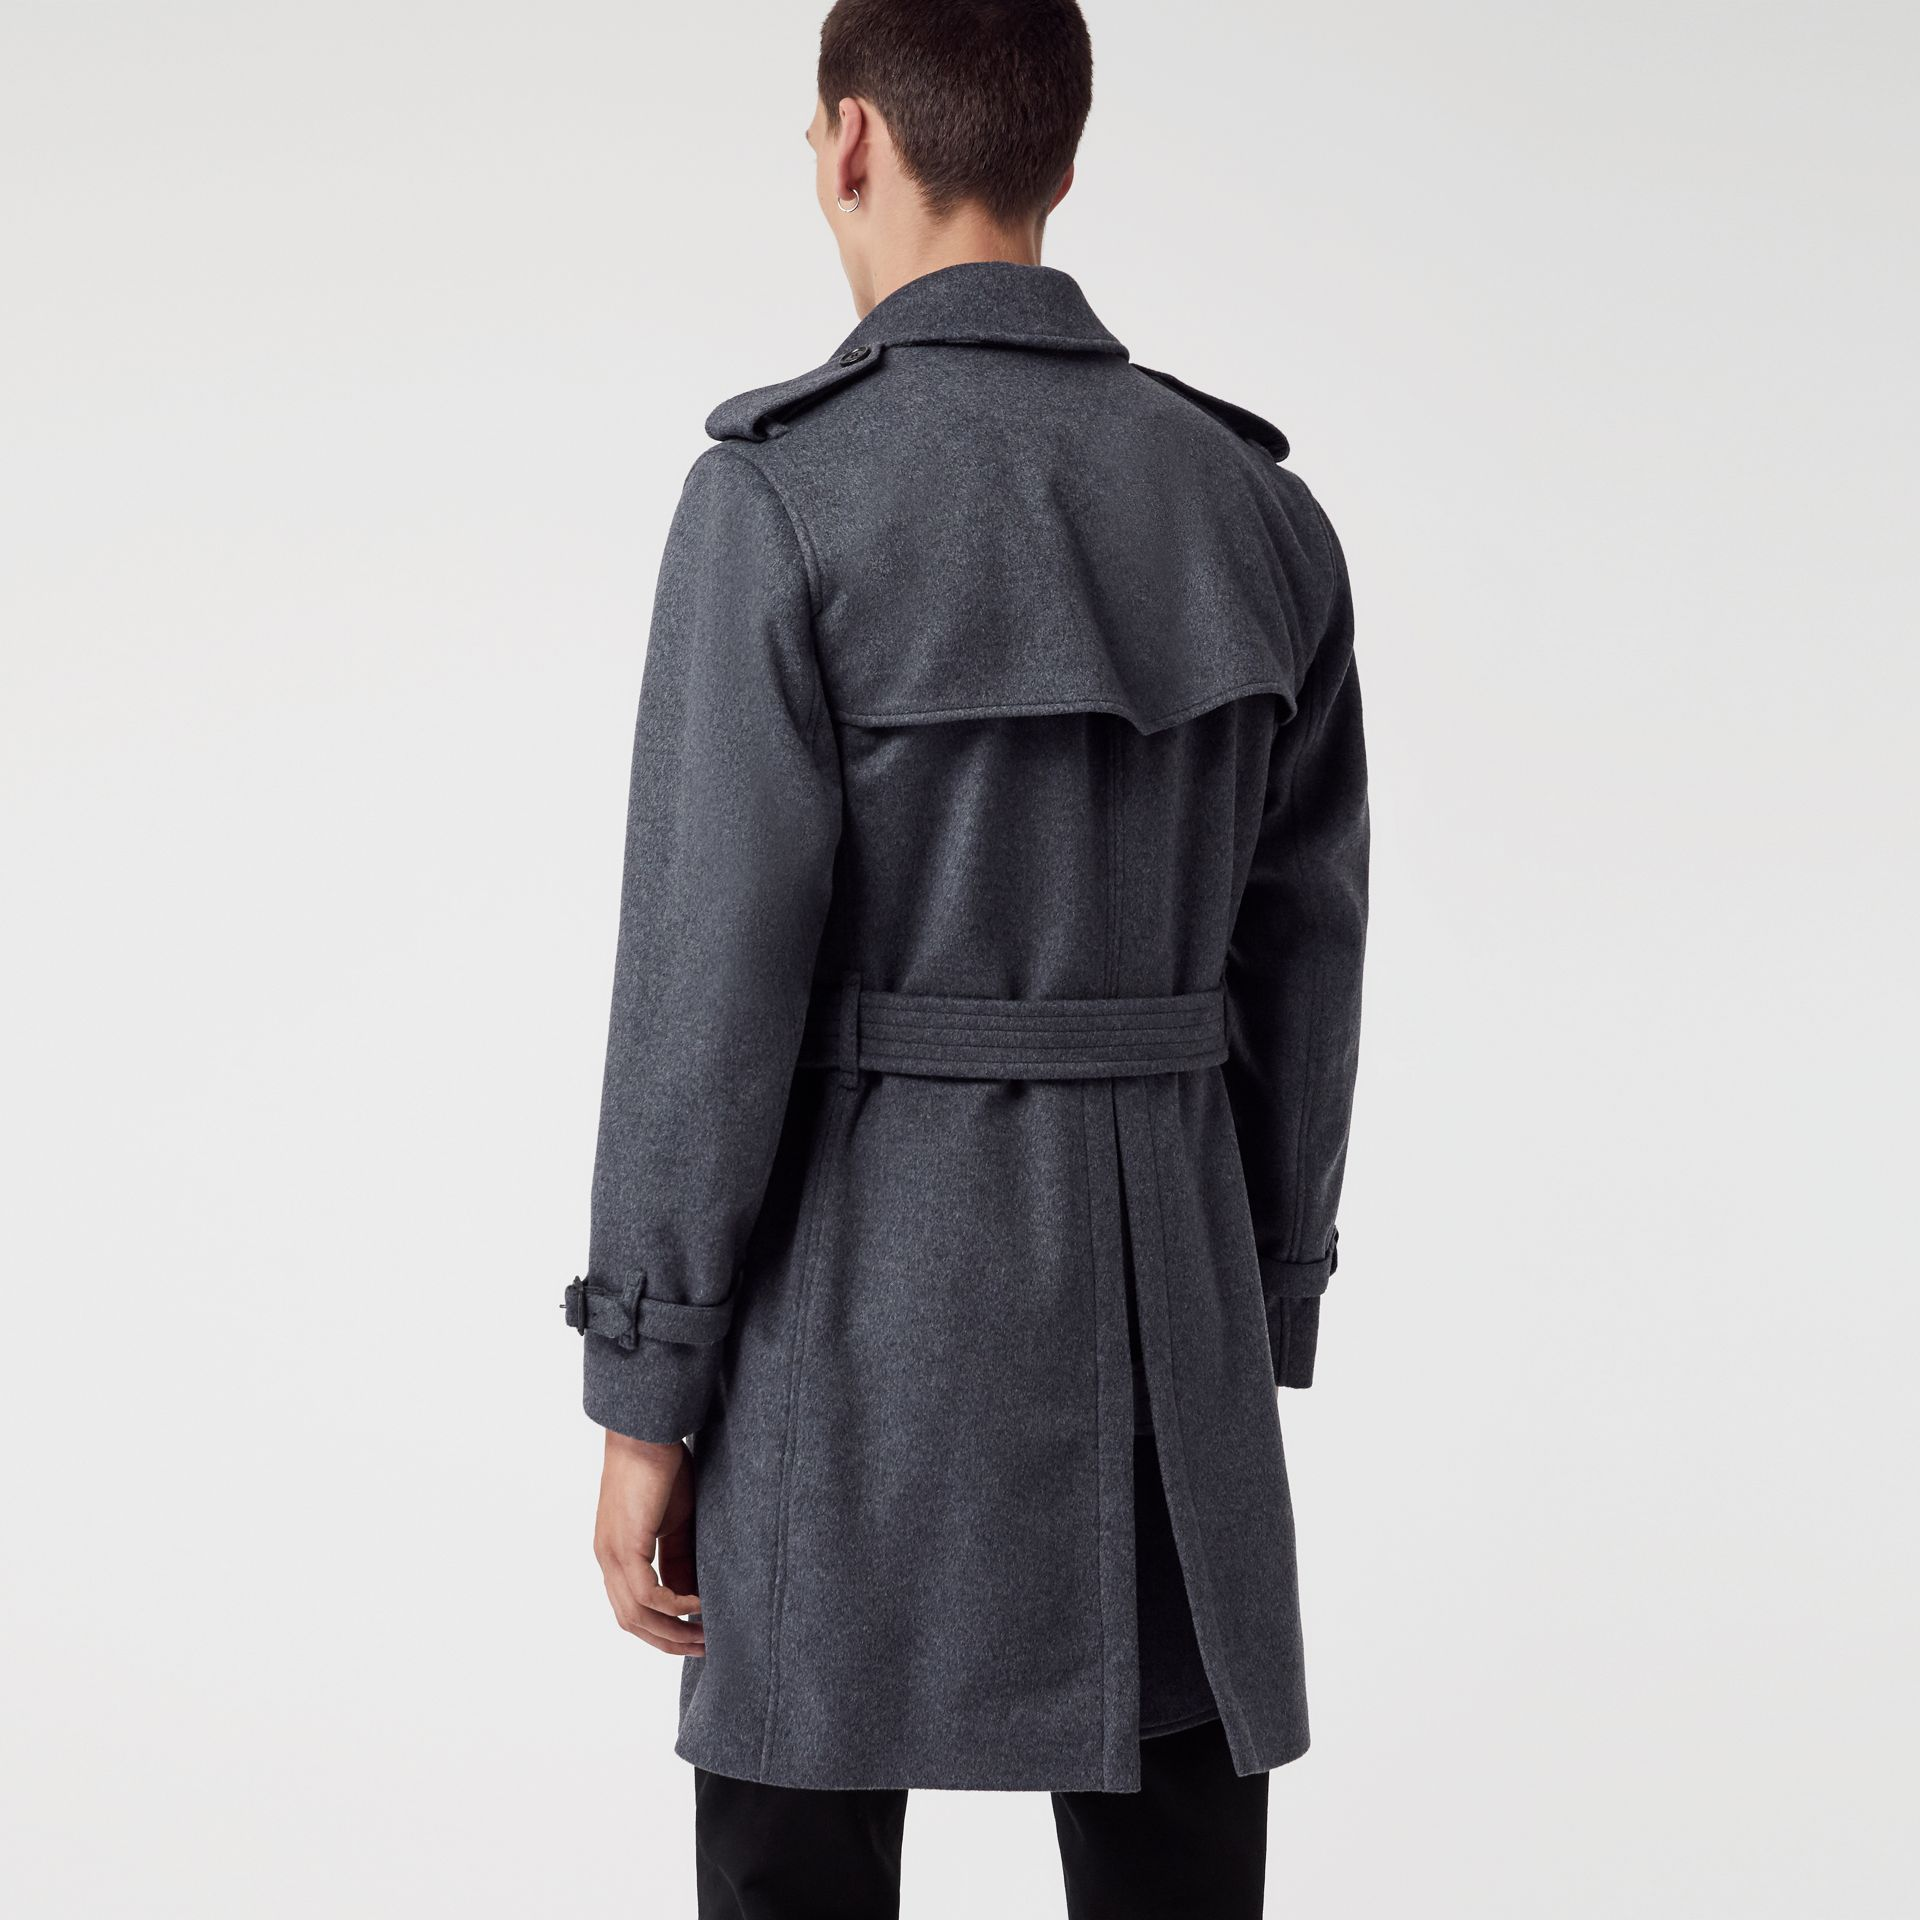 Wool Cashmere Trench Coat in Pewter Melange - Men | Burberry United States - gallery image 2